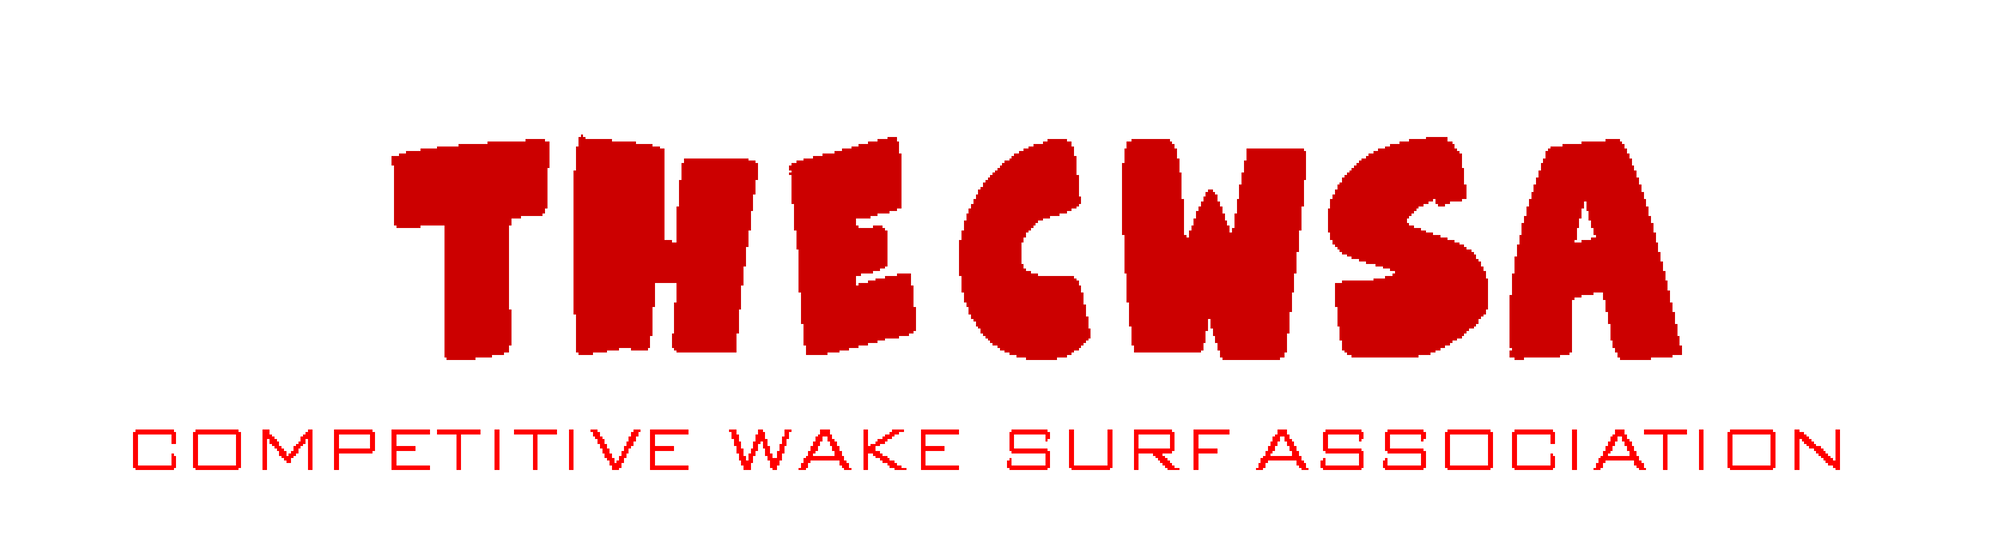 Competitive Wake Surf Association